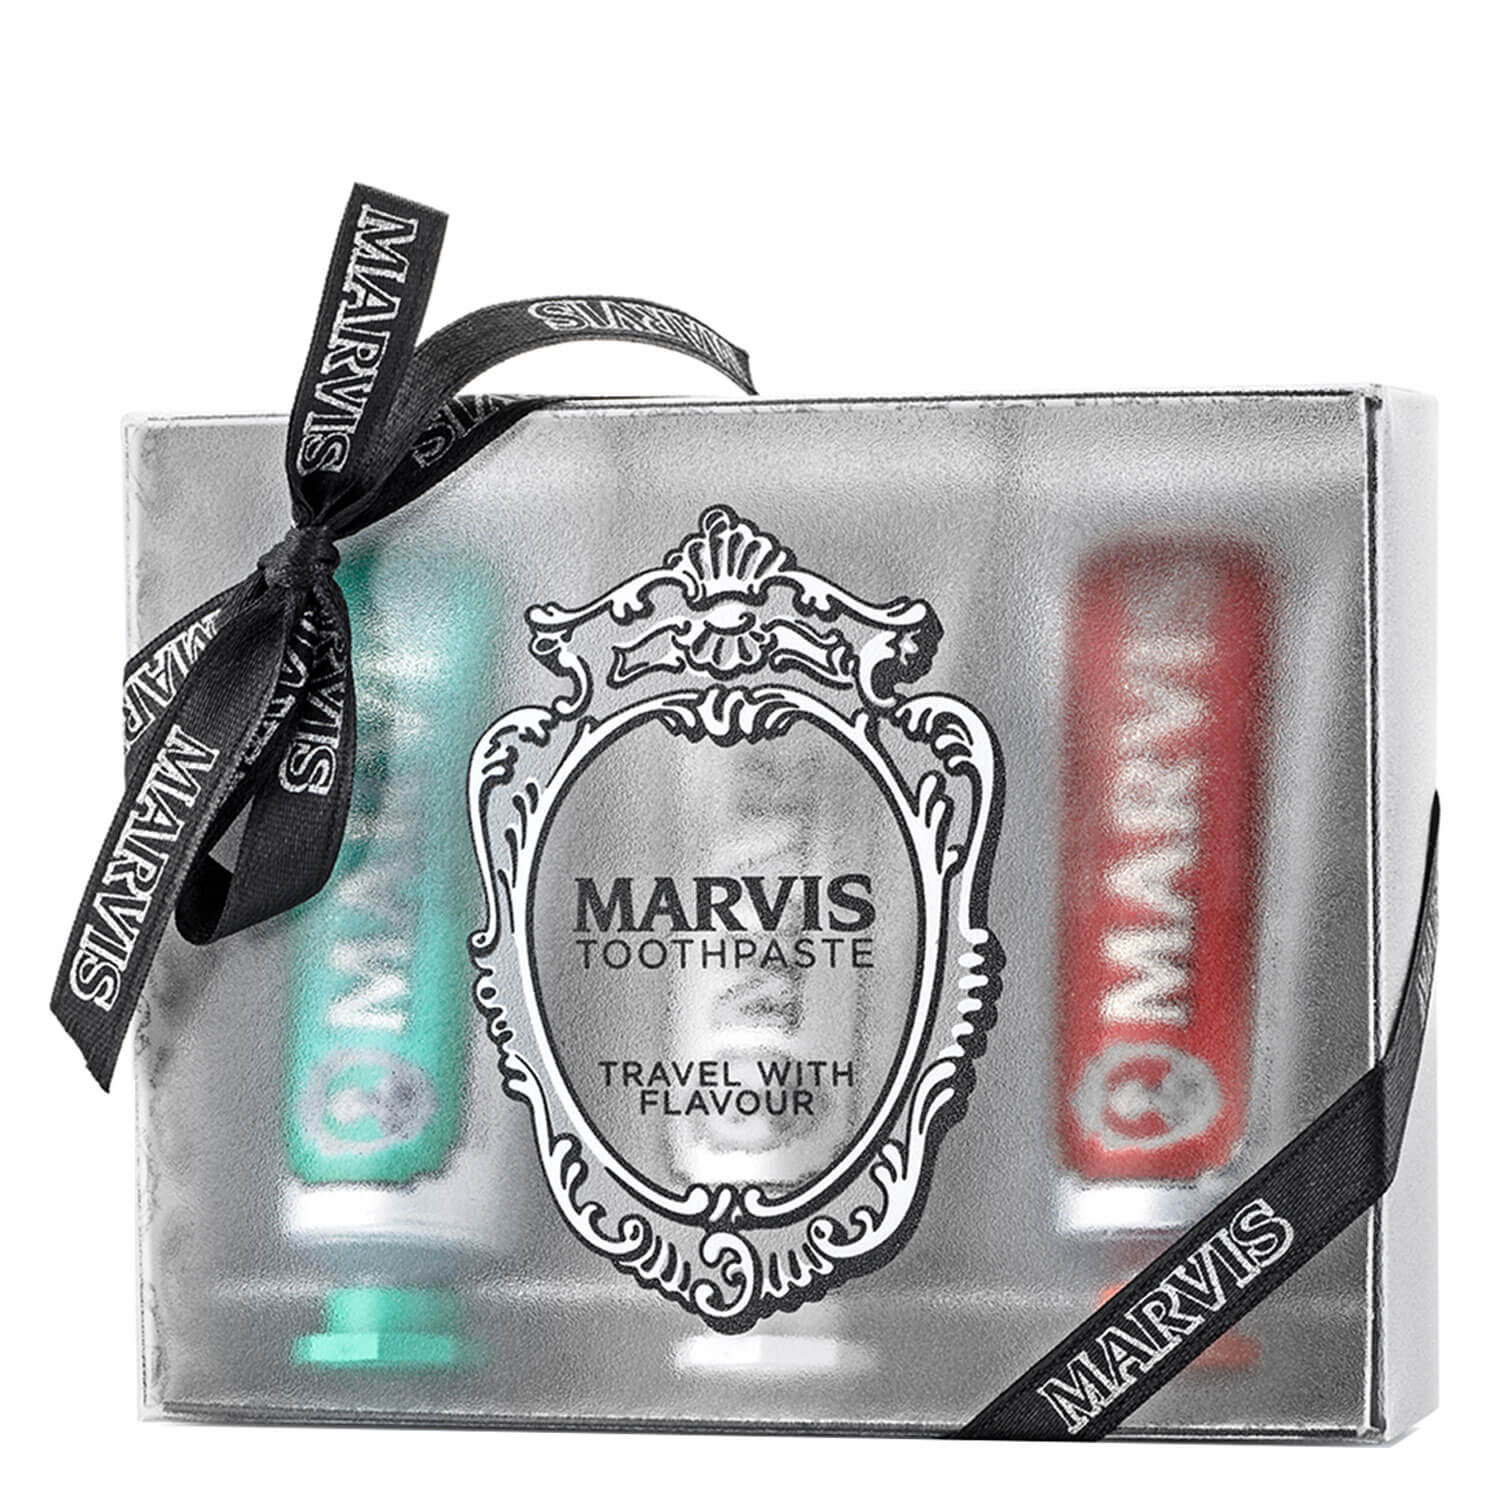 Marvis - 3 Flavours Box